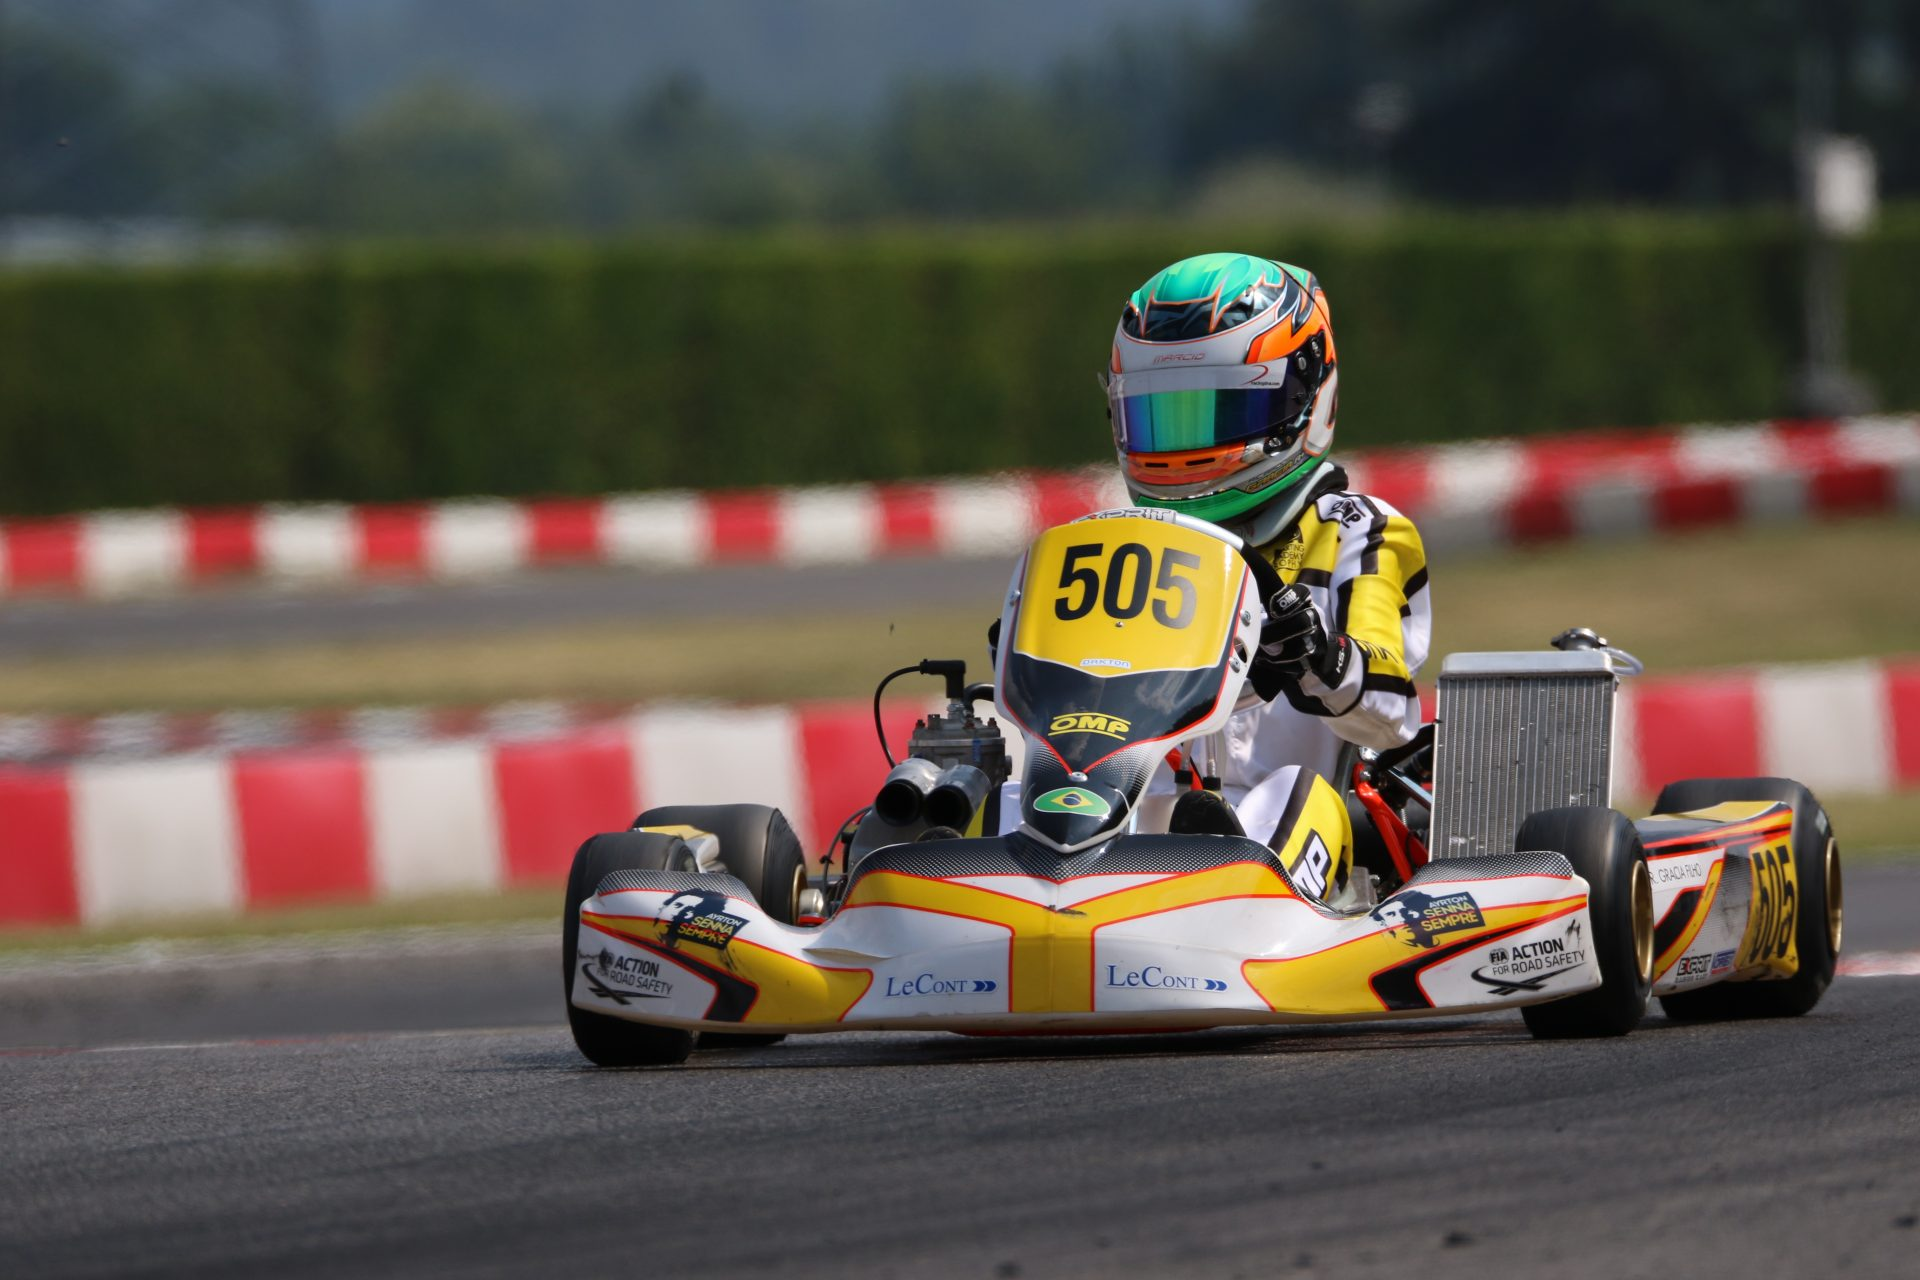 Photo of Kart – Anunciado como piloto Parolin na Europa, Ricardo Gracia estreia em 2019 no Paulista Light de Kart